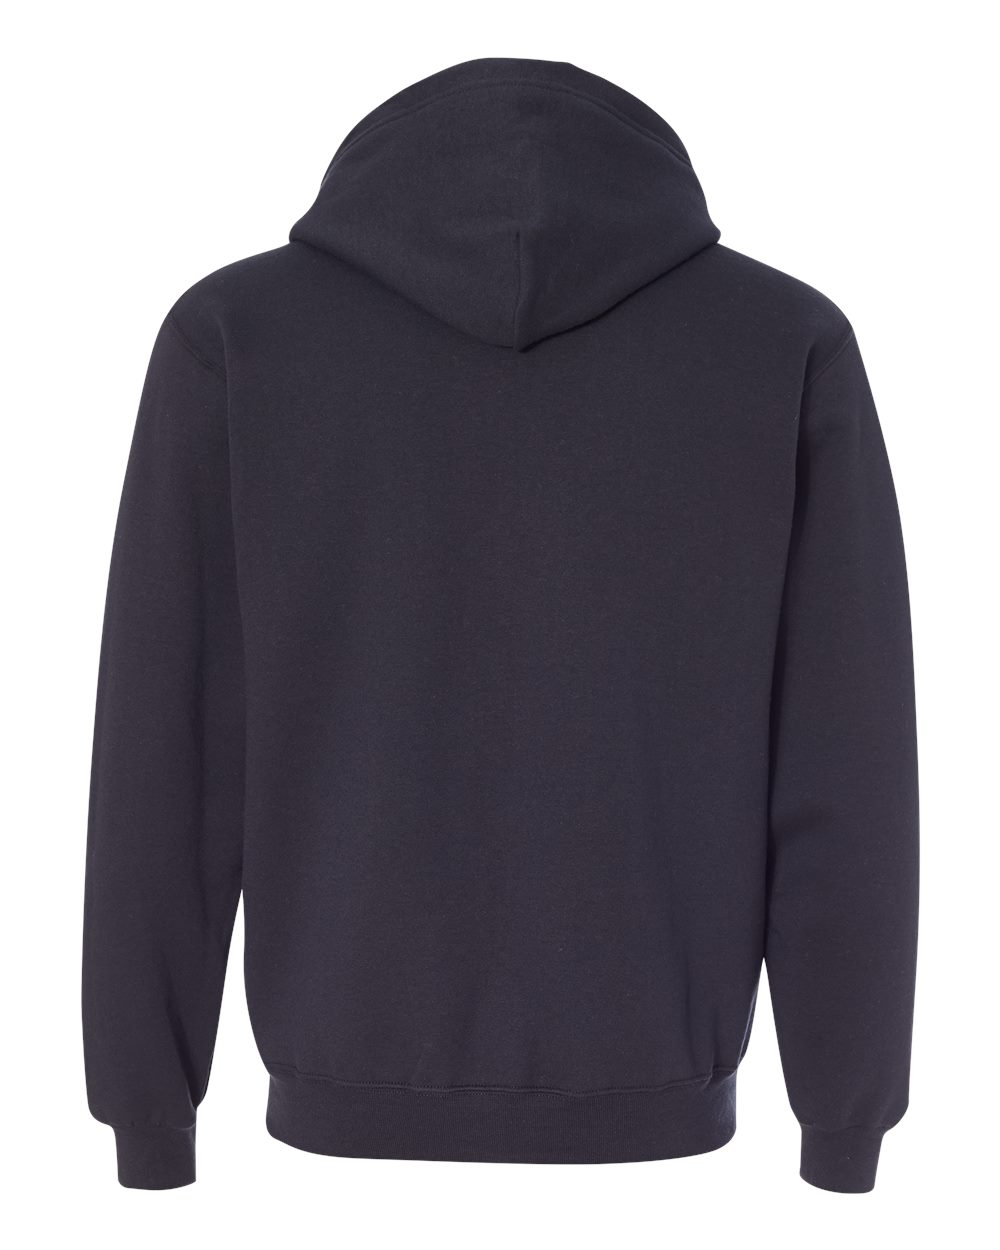 Fruit-of-the-Loom-Mens-Sofspun-Hooded-Full-Zip-Sweatshirt-Blank-SF73R-up-to-3XL thumbnail 13